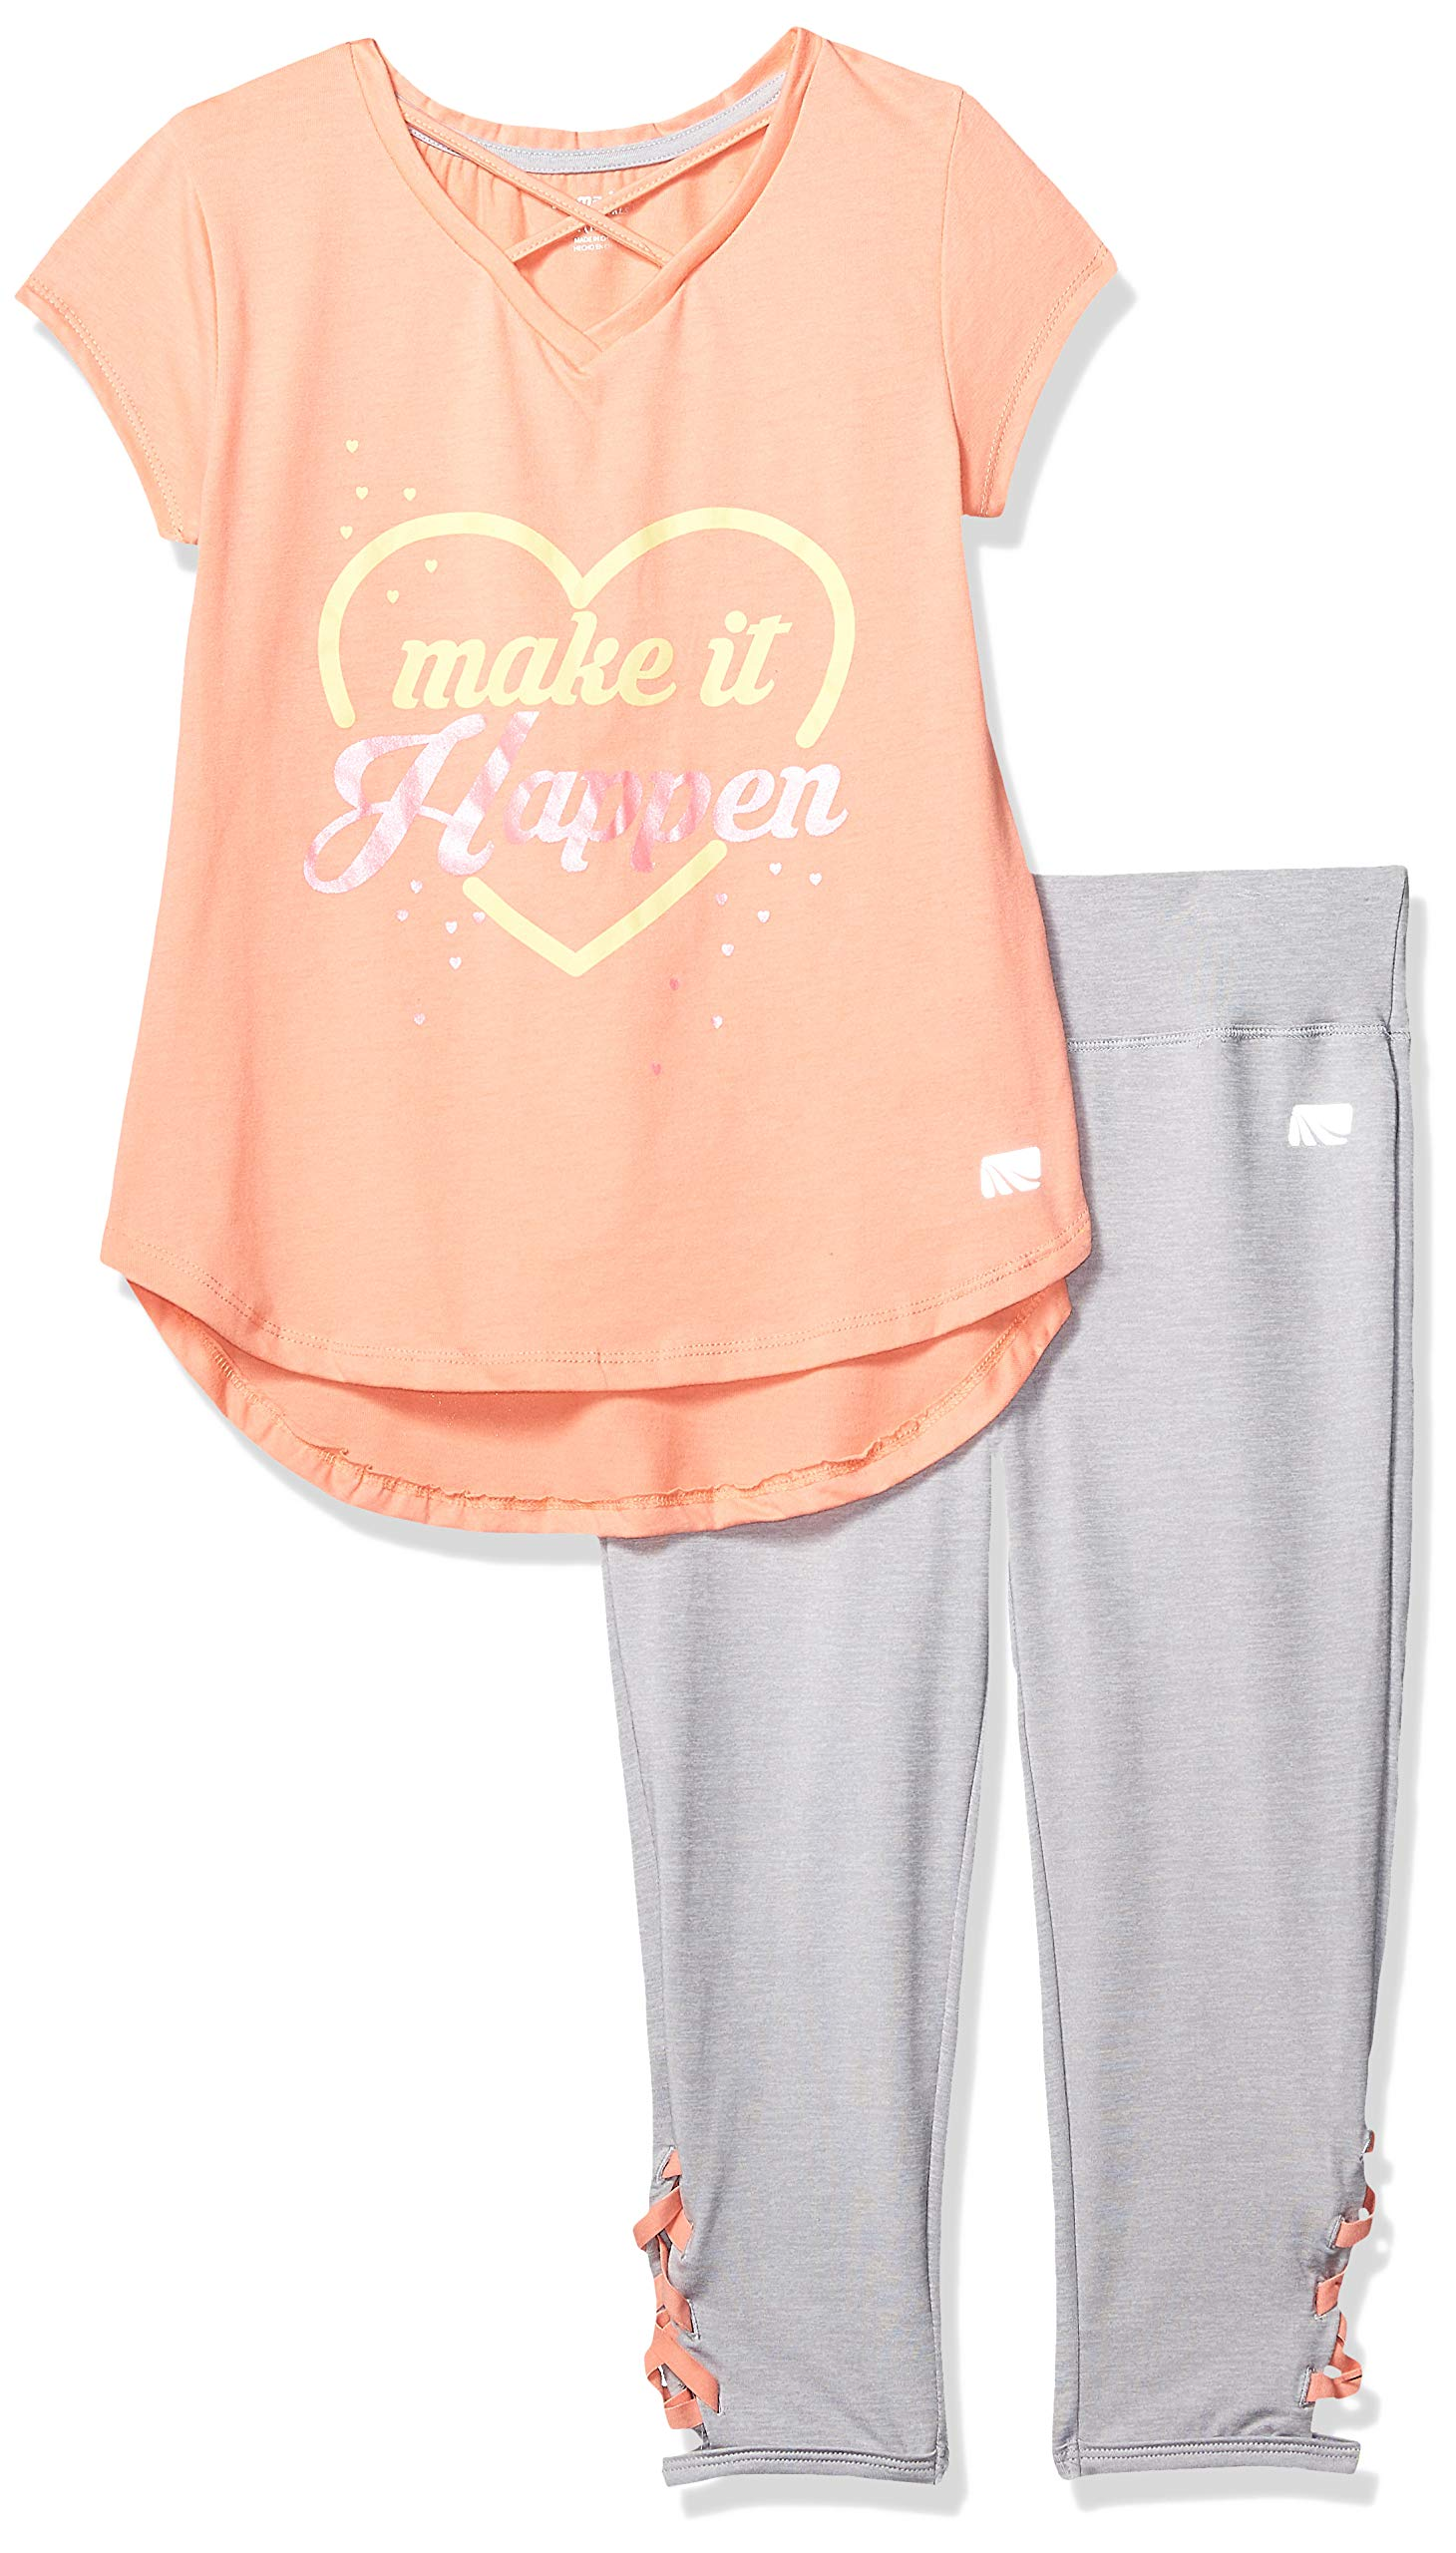 Marika Girls' Big Capri Sets with Headband, Coral Make it Happen 7/8